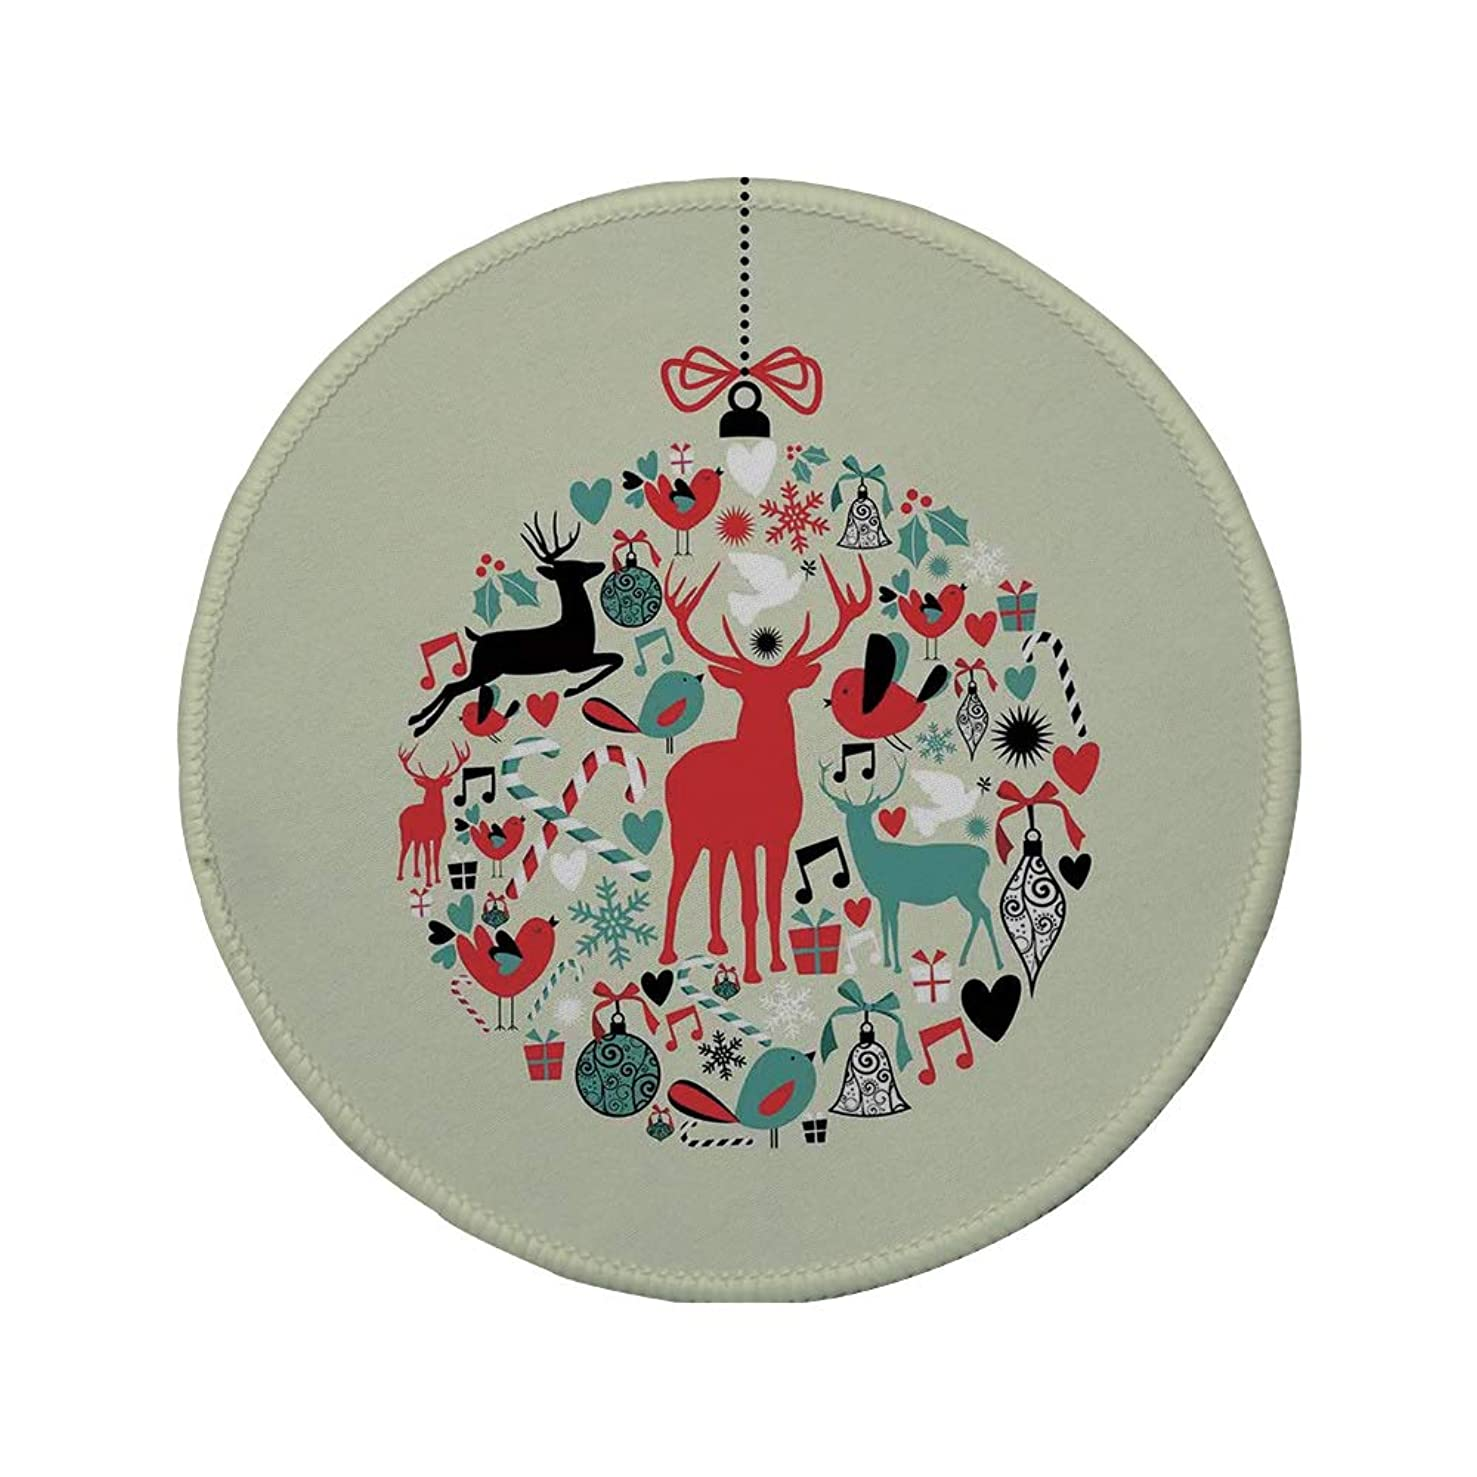 Non-Slip Rubber Round Mouse Pad,Christmas Decorations,Traditional Season Decorative Christmas Themed Design Abstract Art,Beige Red,7.87